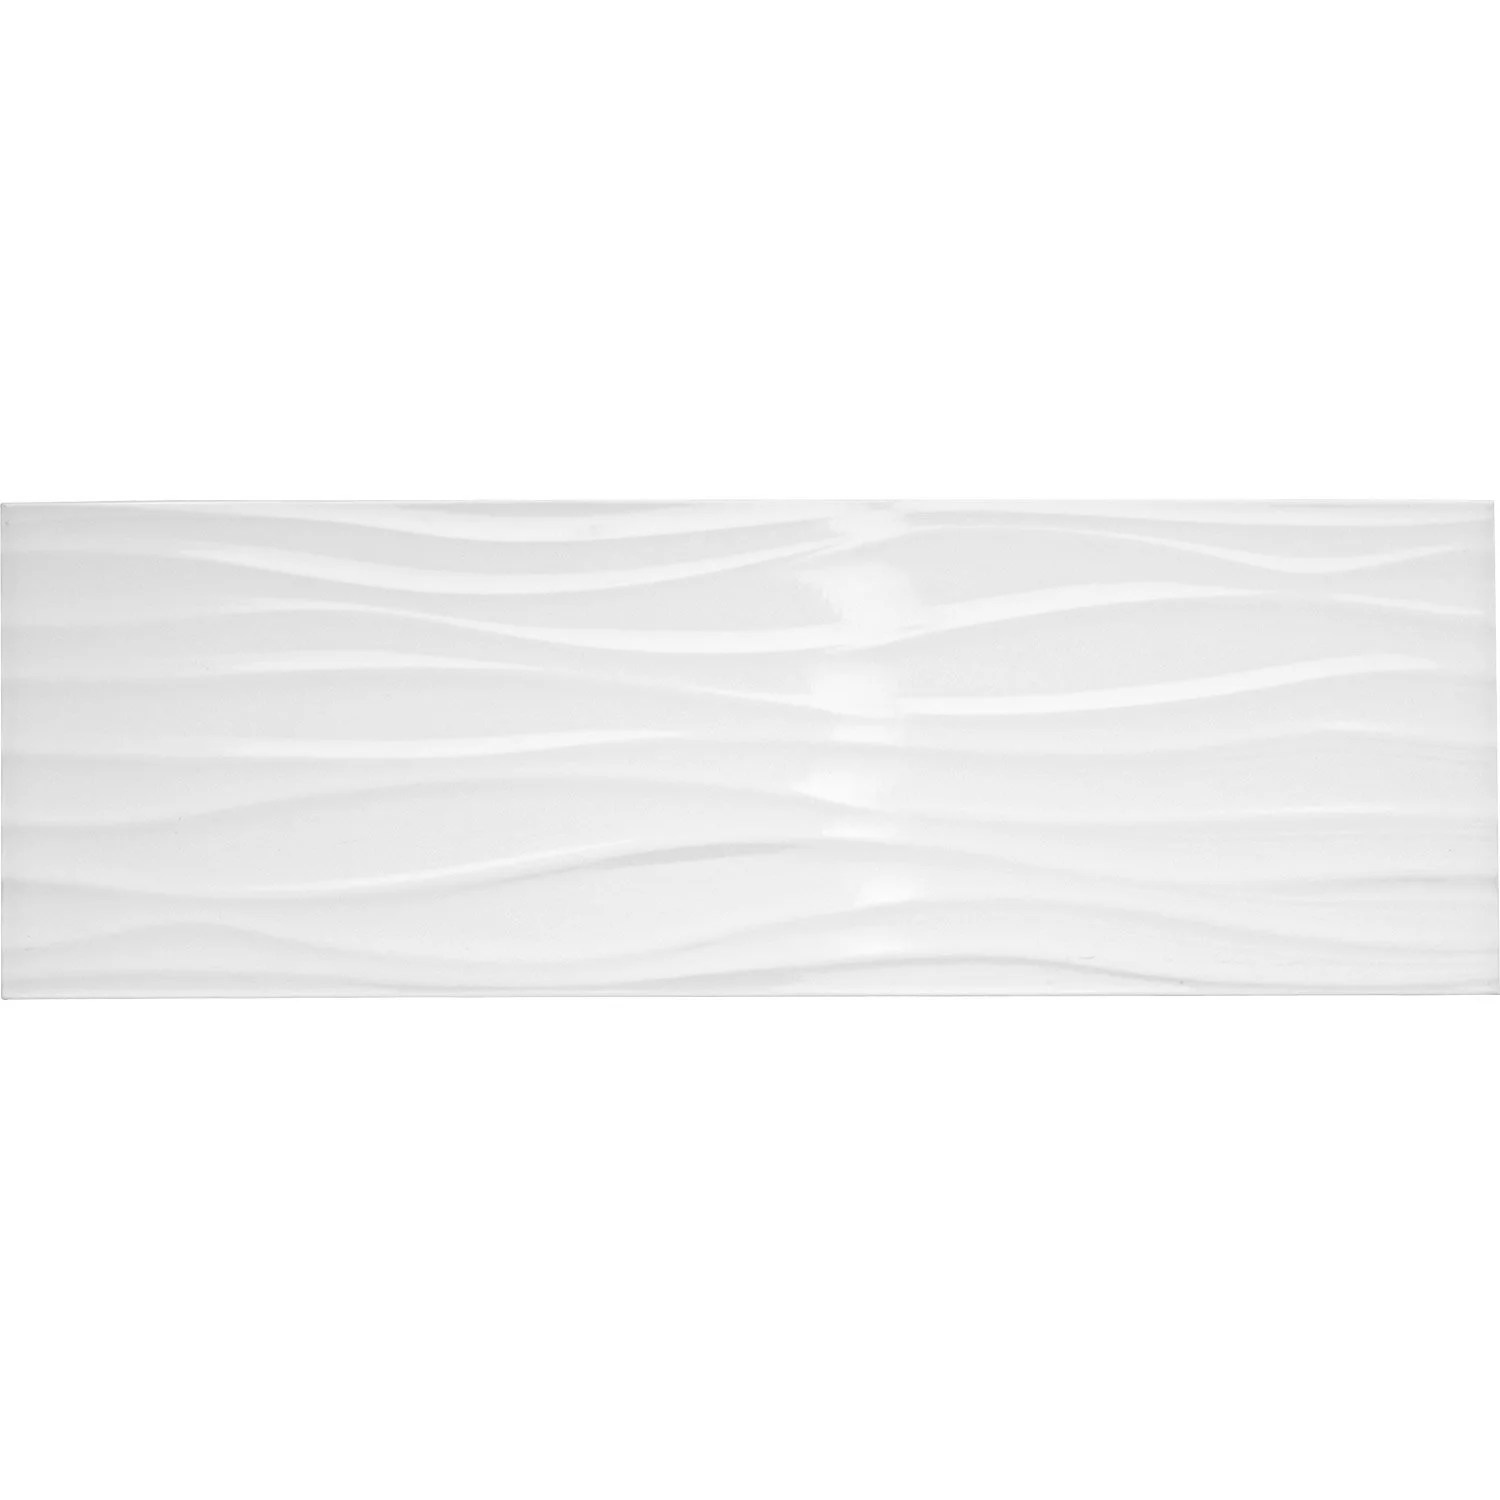 Décoration Murale En Relief Faïence Mur Blanc Brillant Décor Relief Wave L 25 X L 75